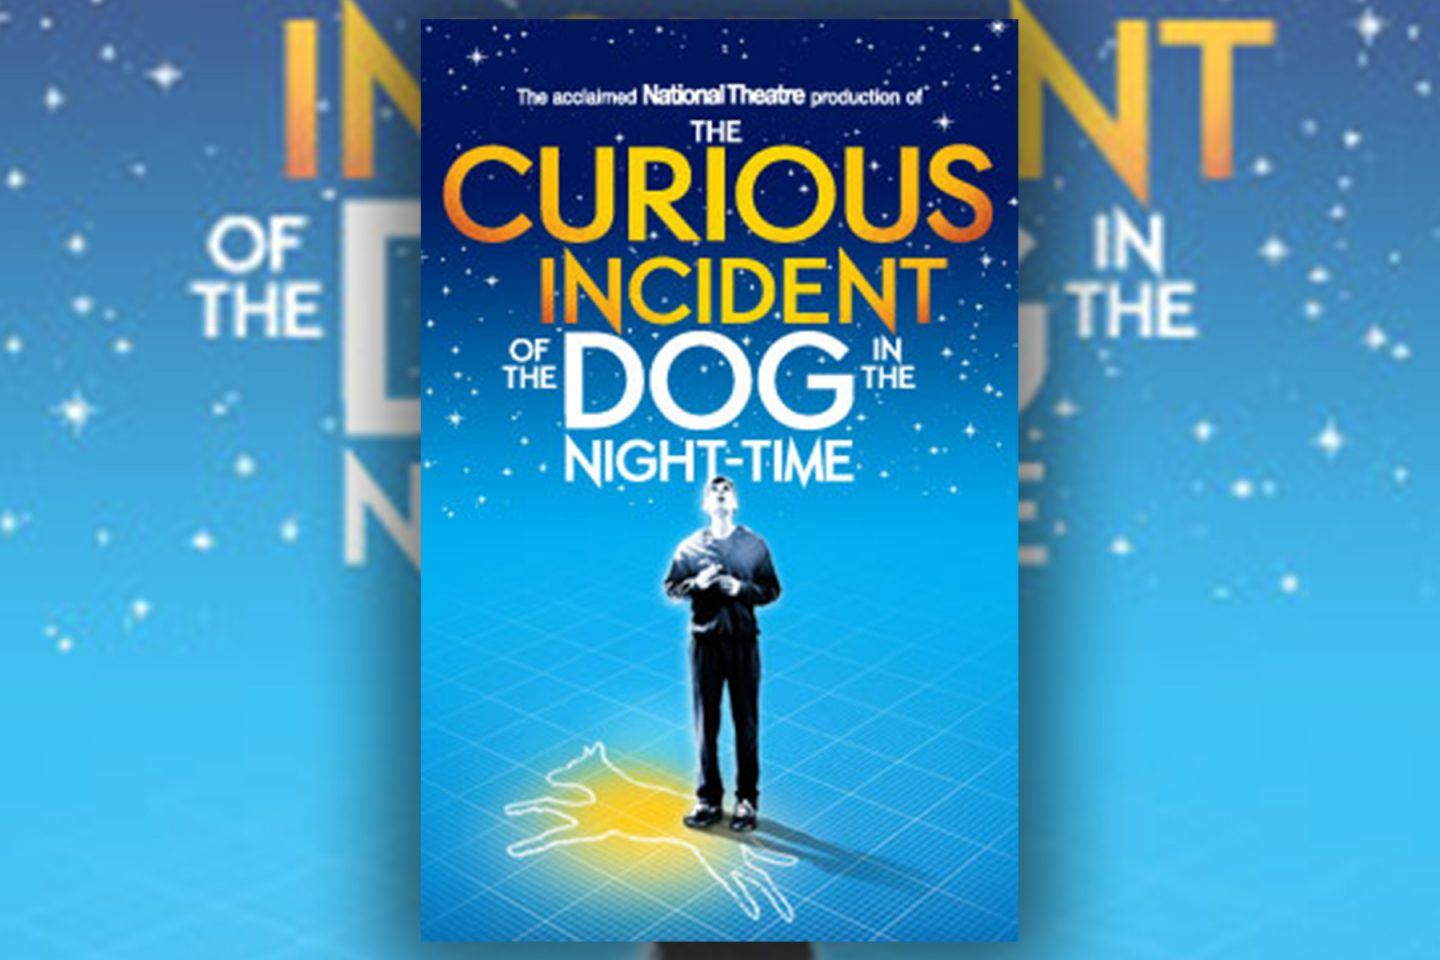 Review: The Curious Incident of the Dog in the Night Time